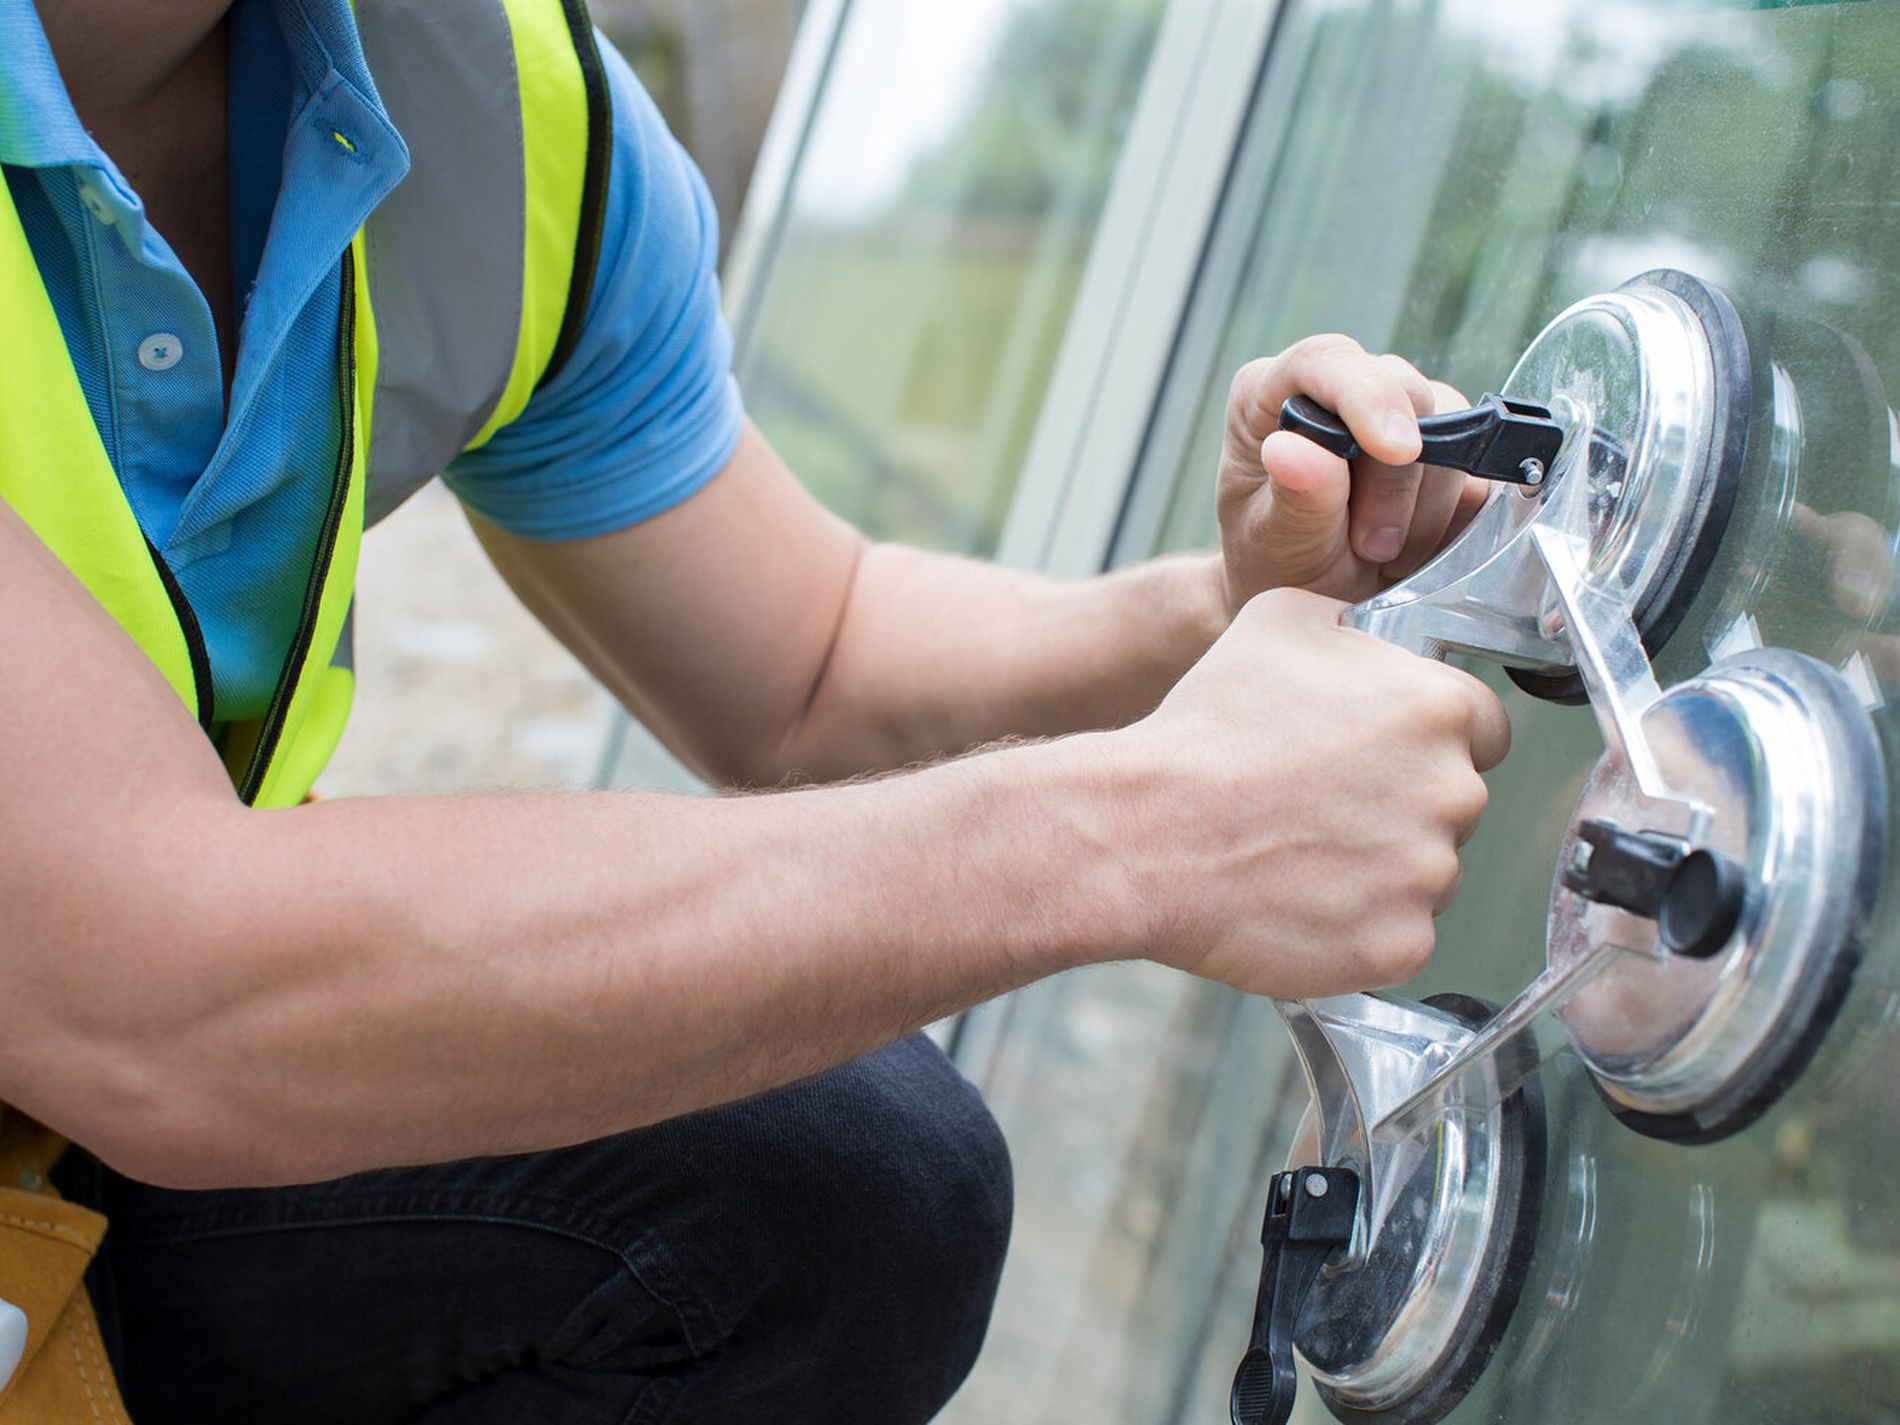 Glass/Glazing Supply Installation Replacement or Repair Business